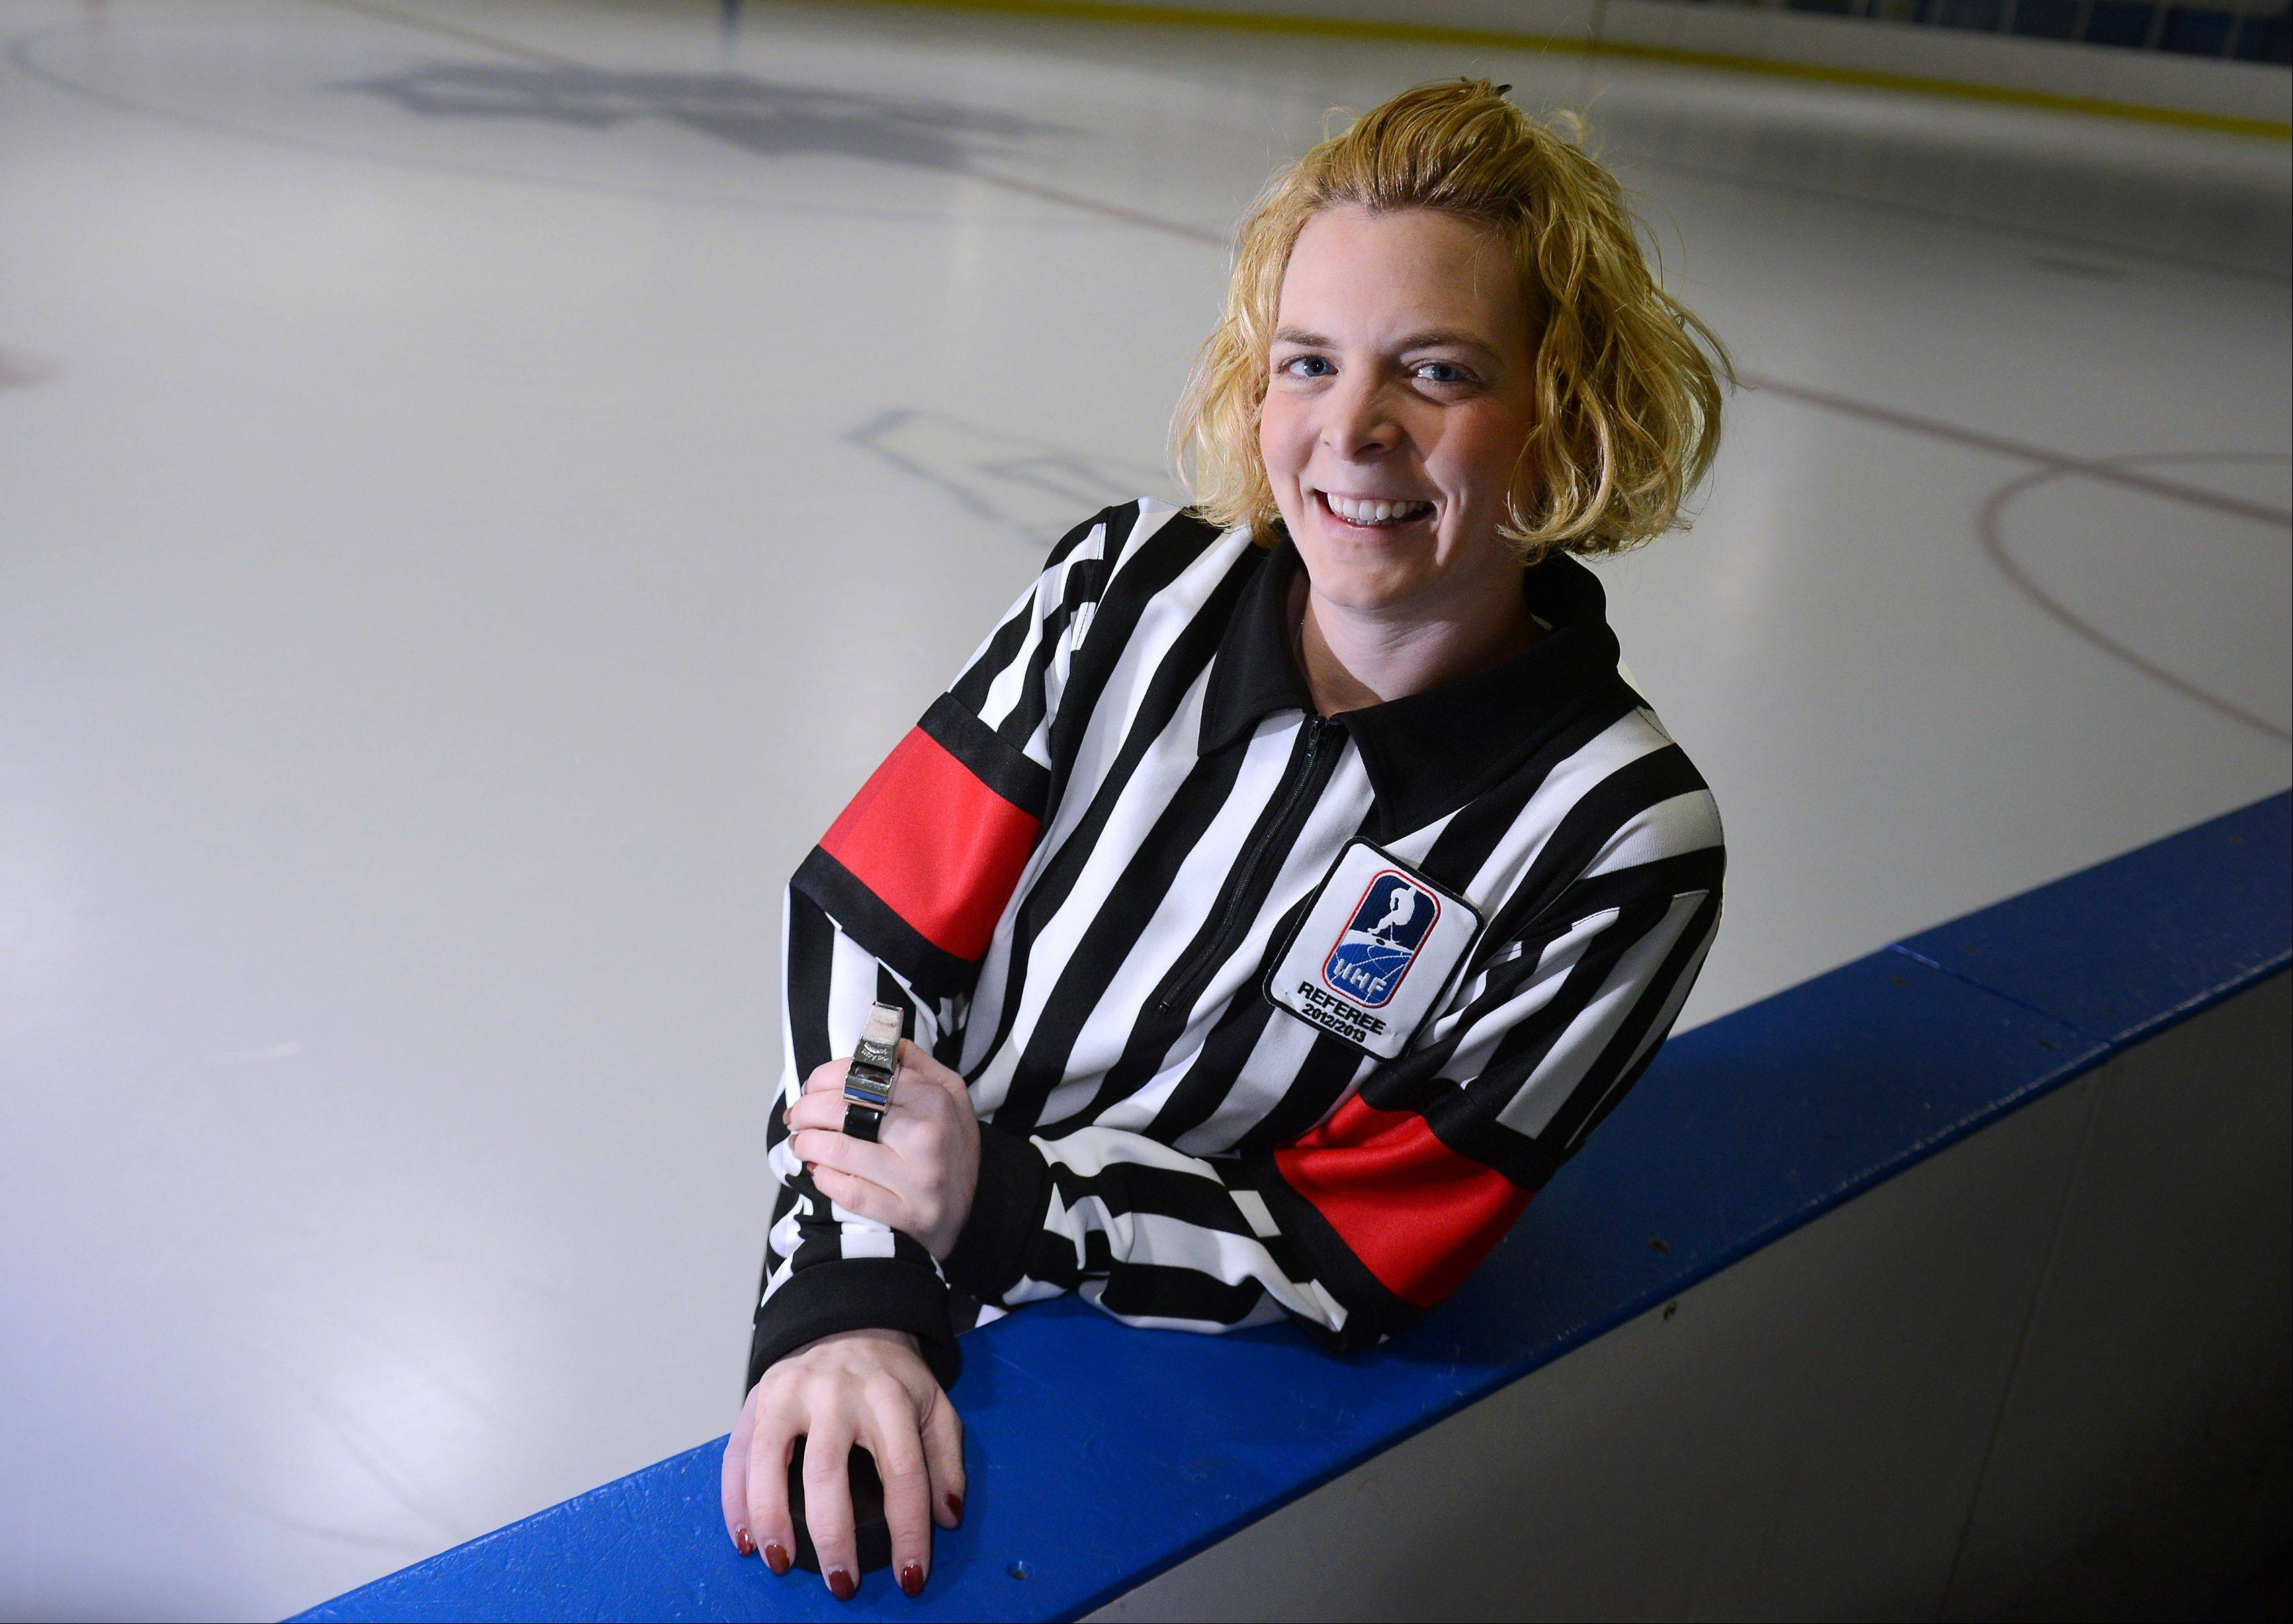 Erin Blair, 32, a Lisle native and health teacher in Carpentersville, will be heading to the 2014 Winter Olympics in Sochi to referee women's hockey. She was selected for the Olympics based, in part, on her performances at international women's hockey tournaments.